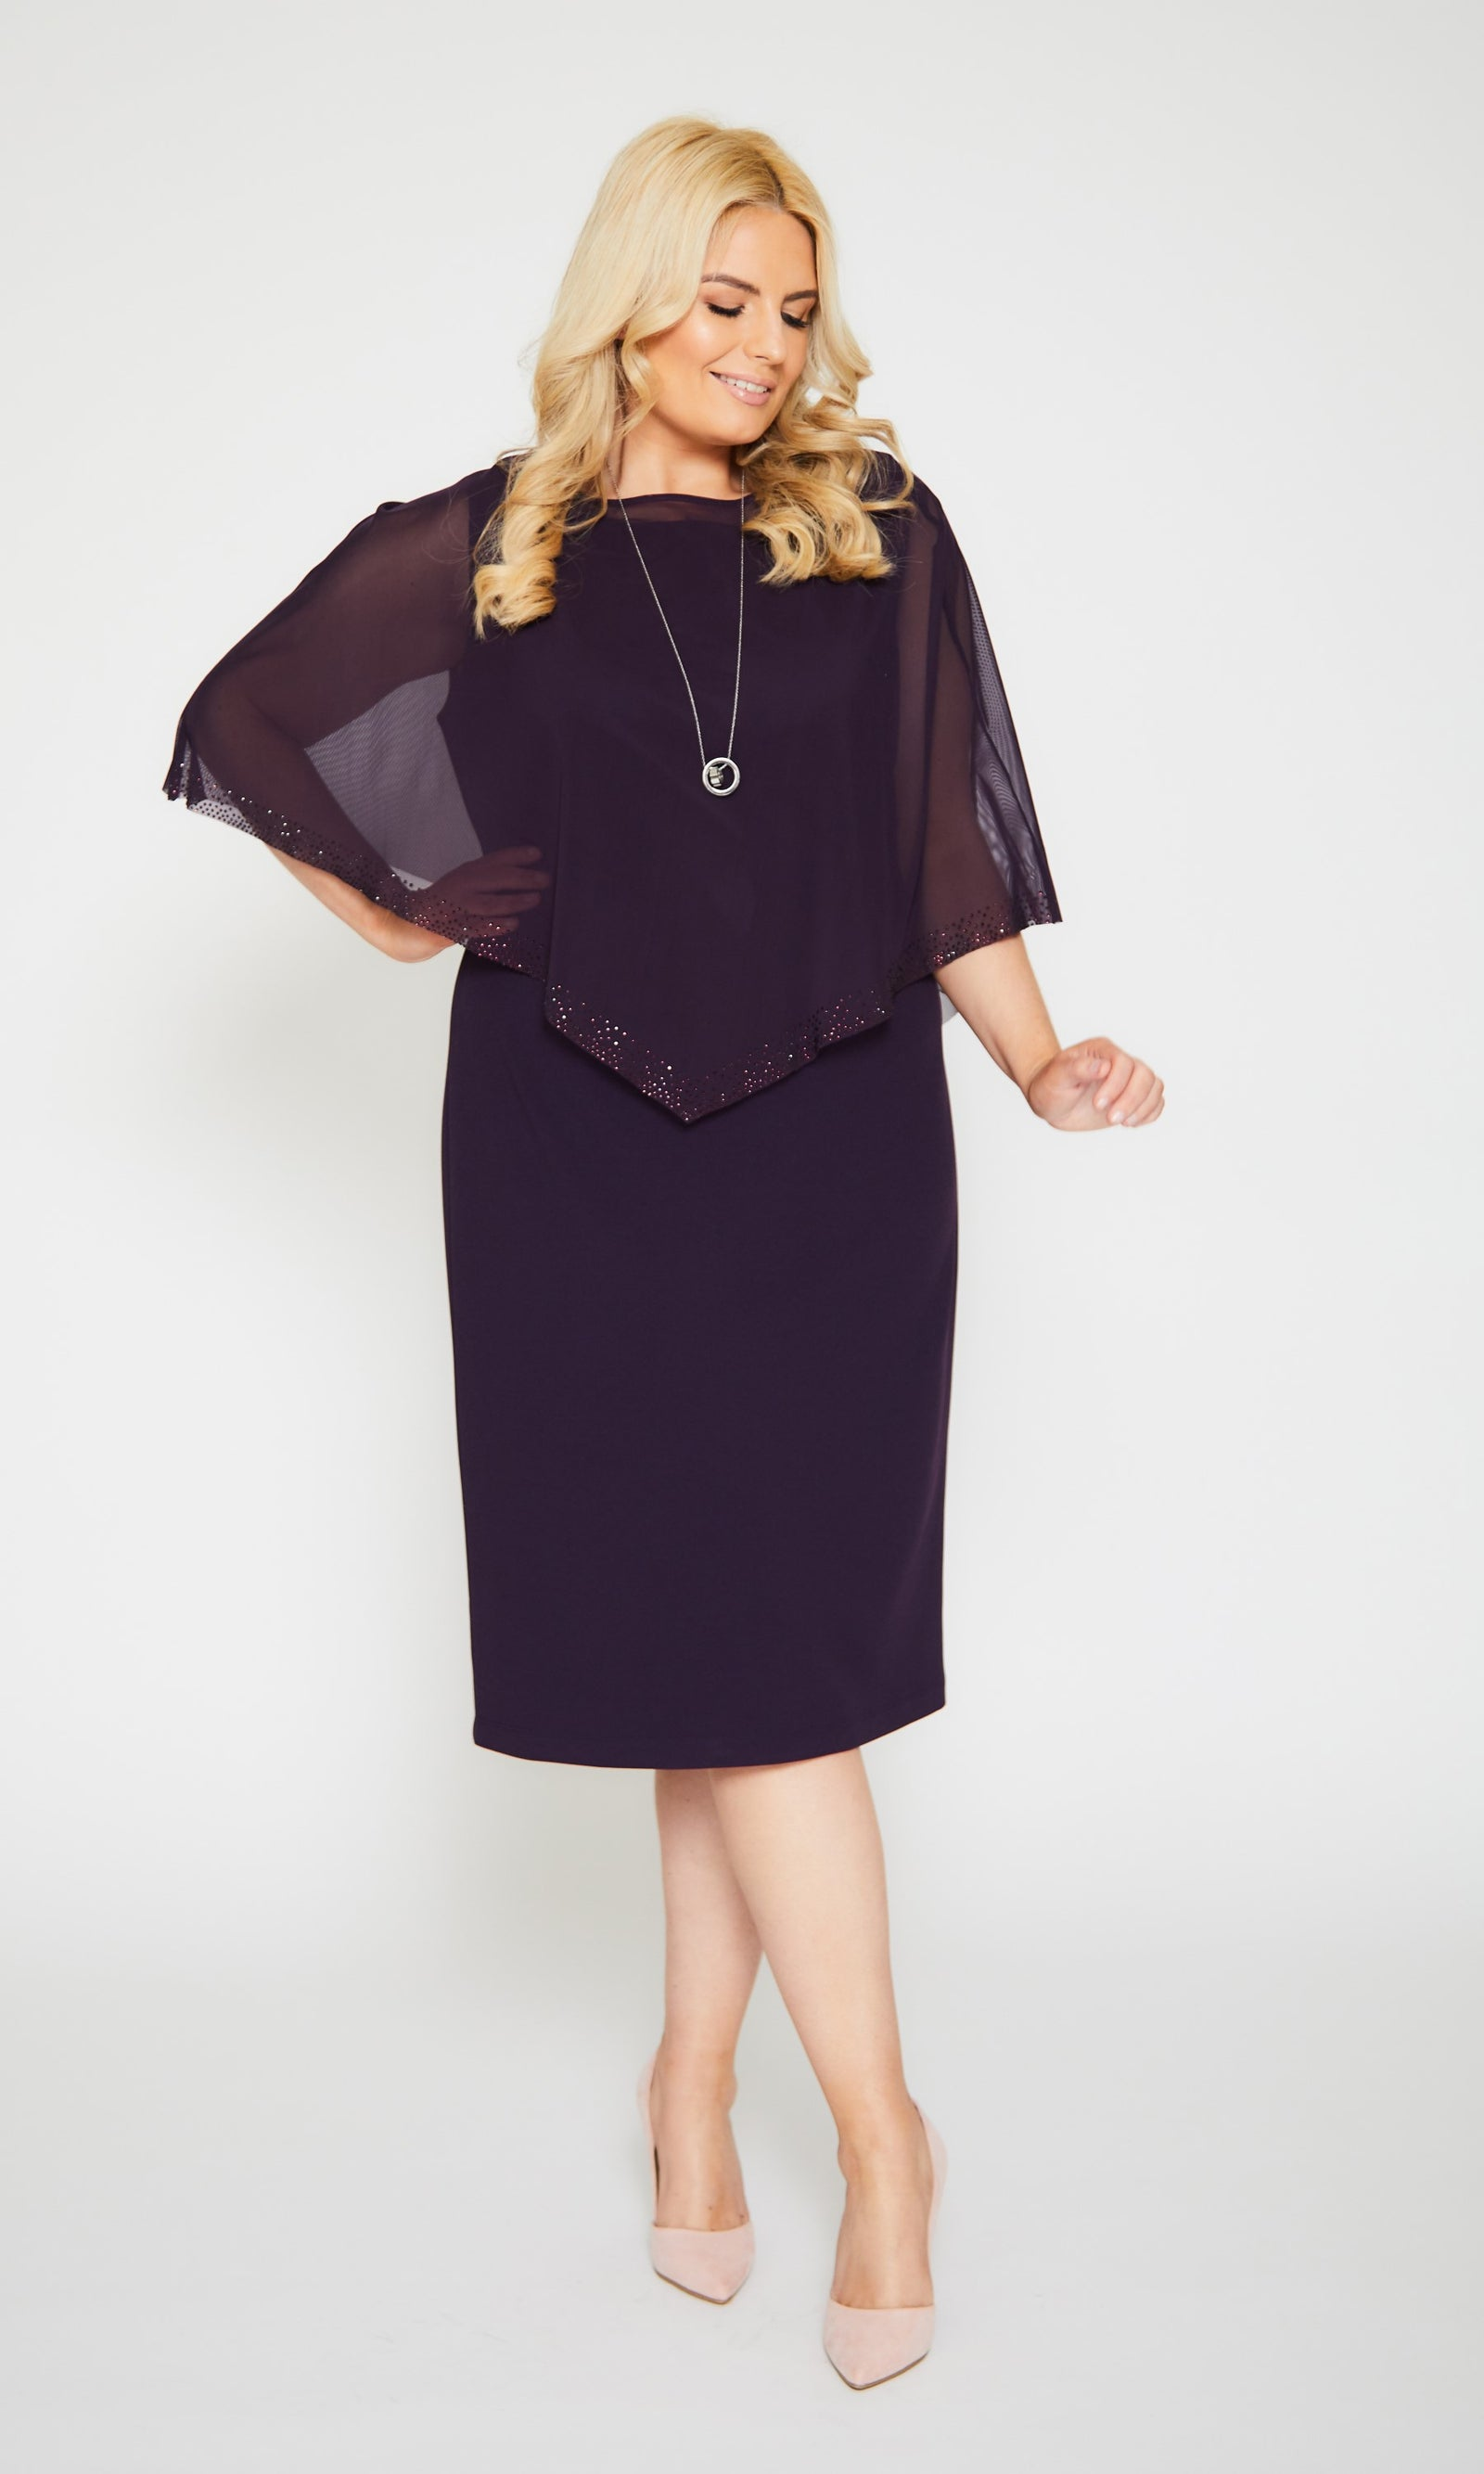 110 Plum Personal Choice Dress With Chiffon Cape